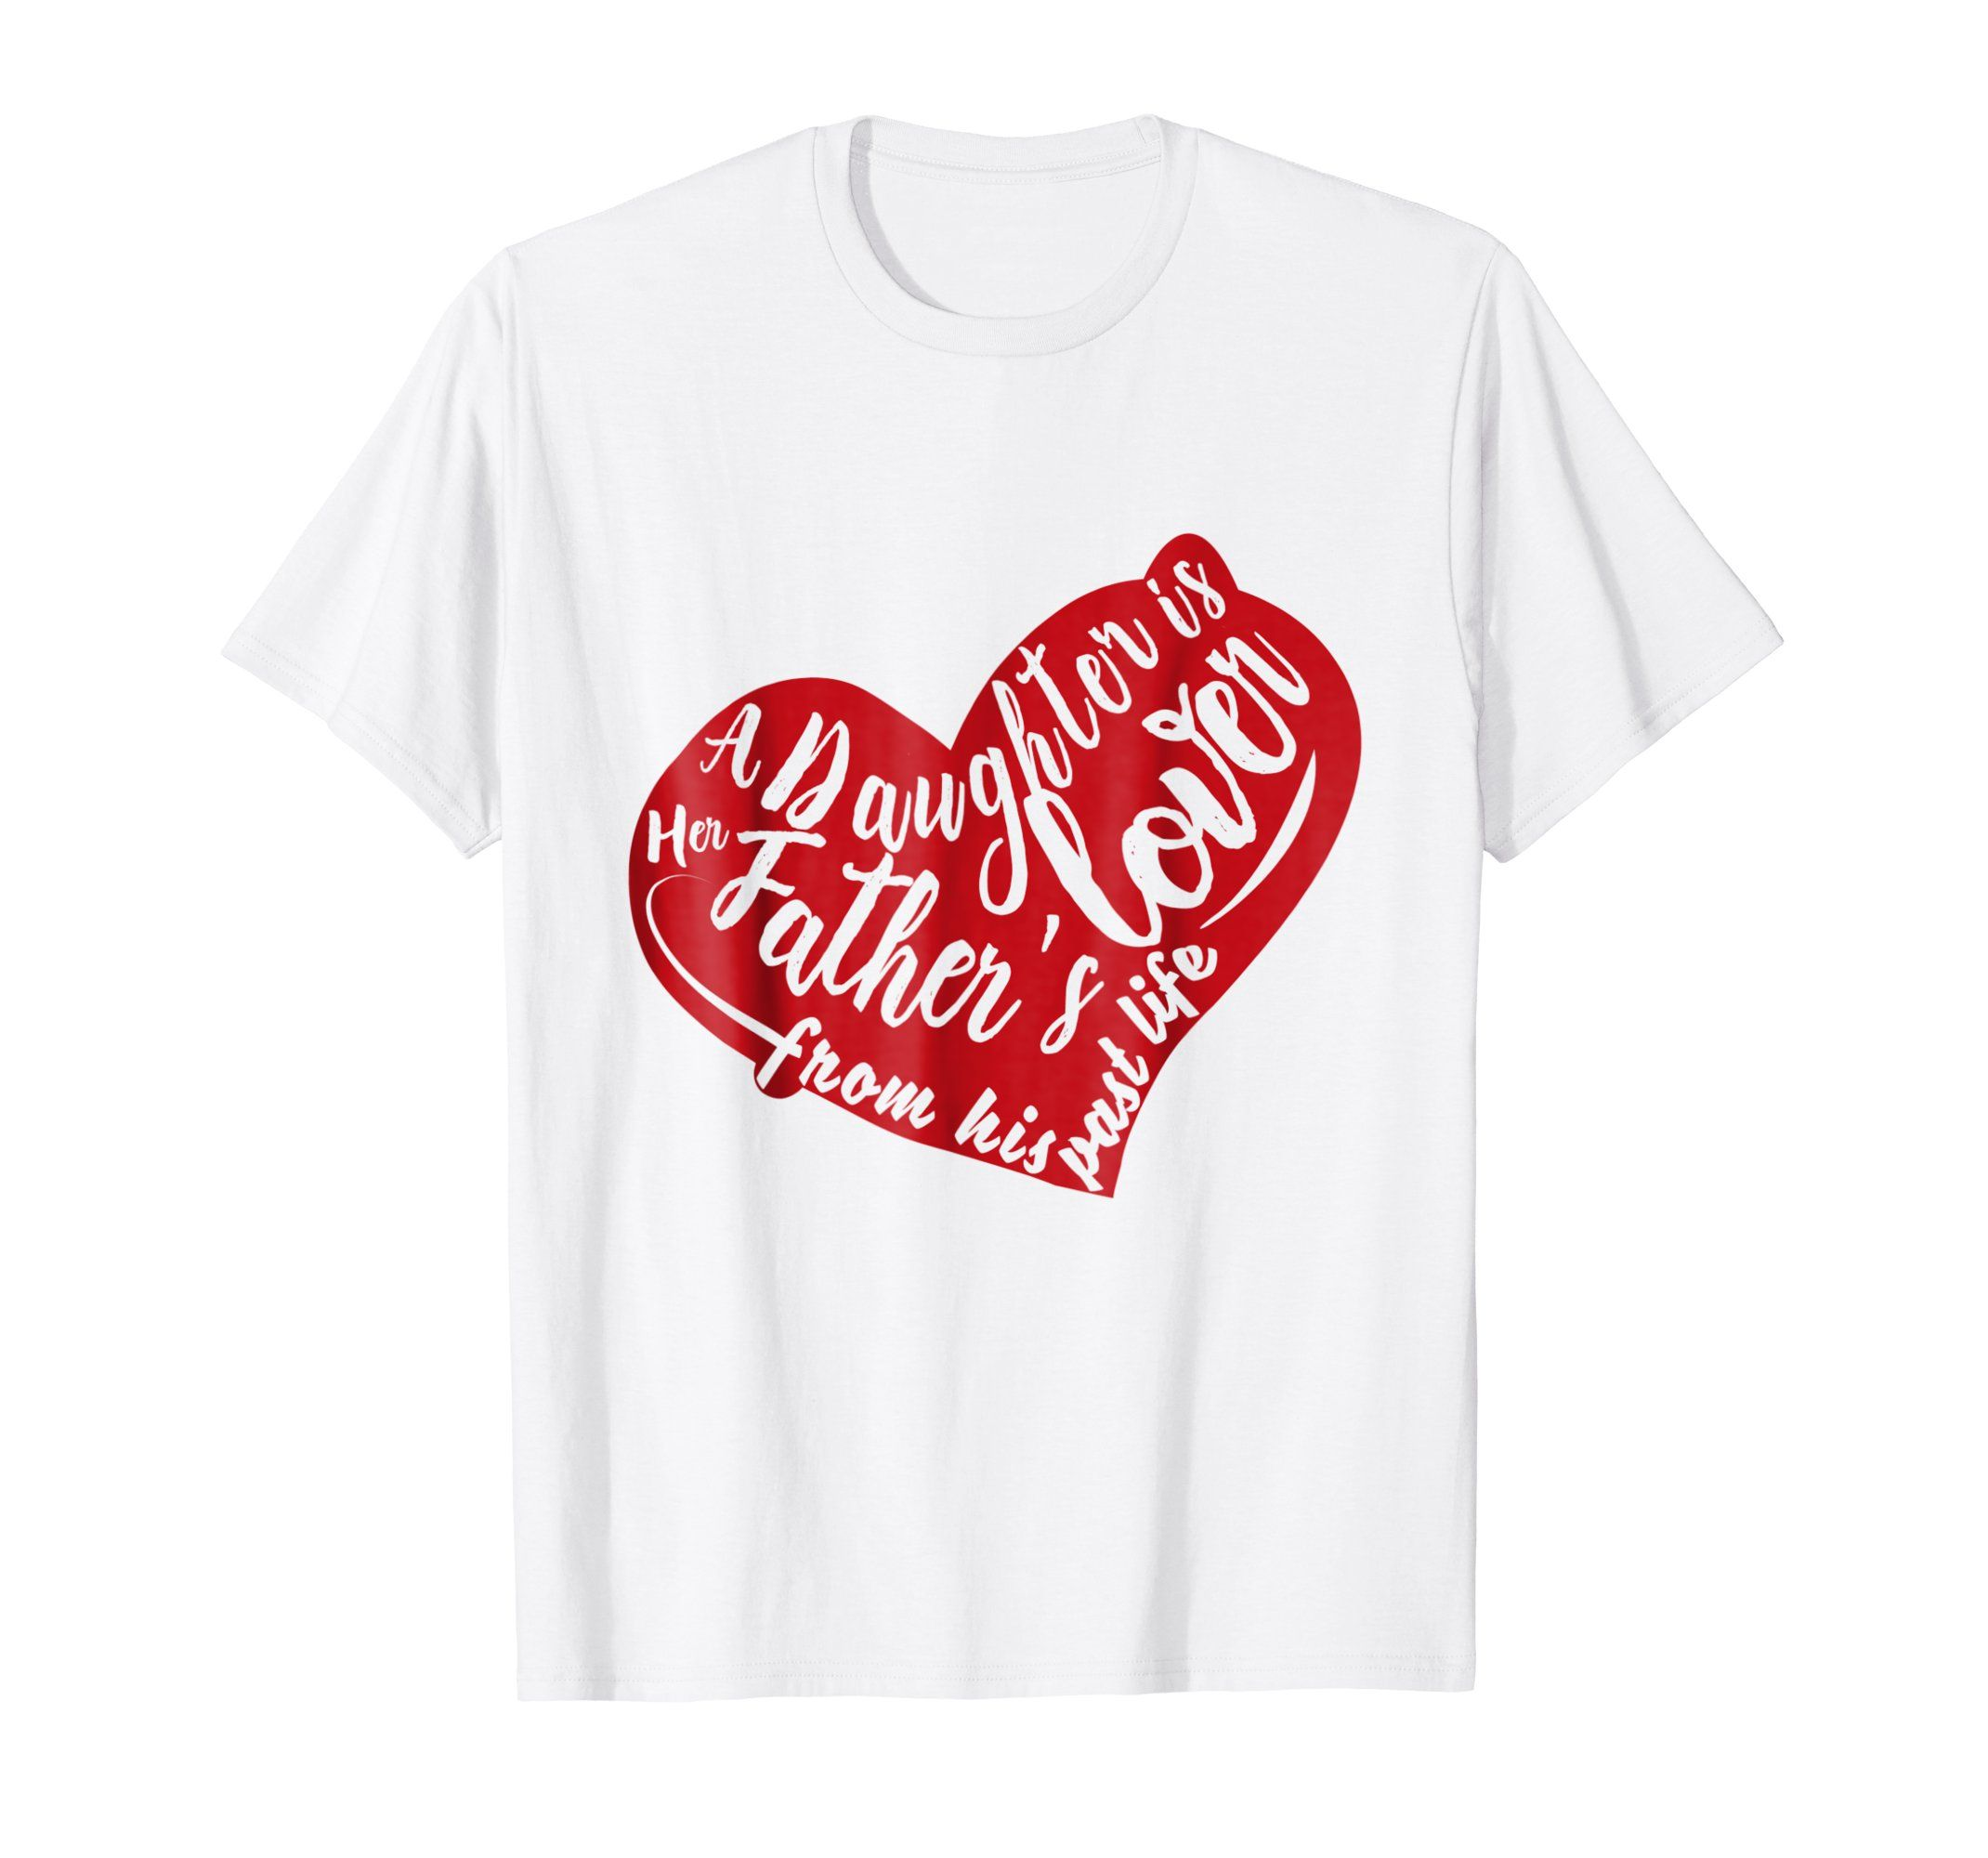 a04dc69b A Daughter is her father's lover from his past life T-shirts for daddy,